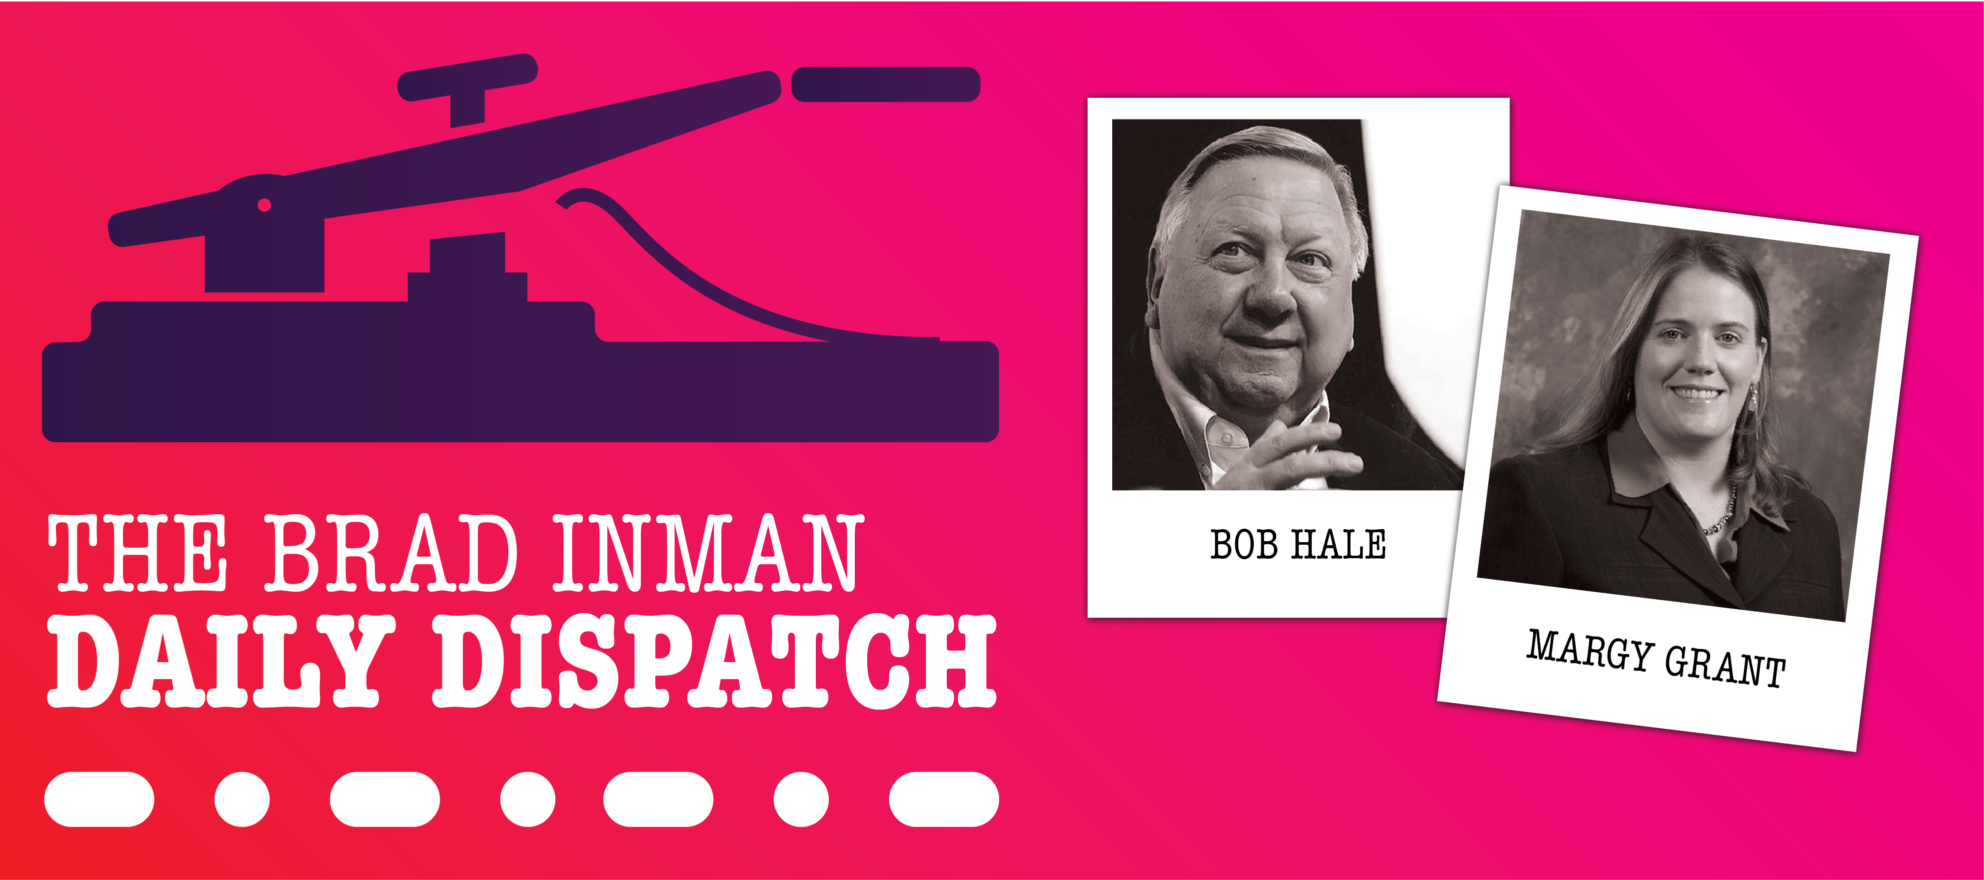 Daily Dispatch: Brad Inman with Bob Hale and Margy Grant